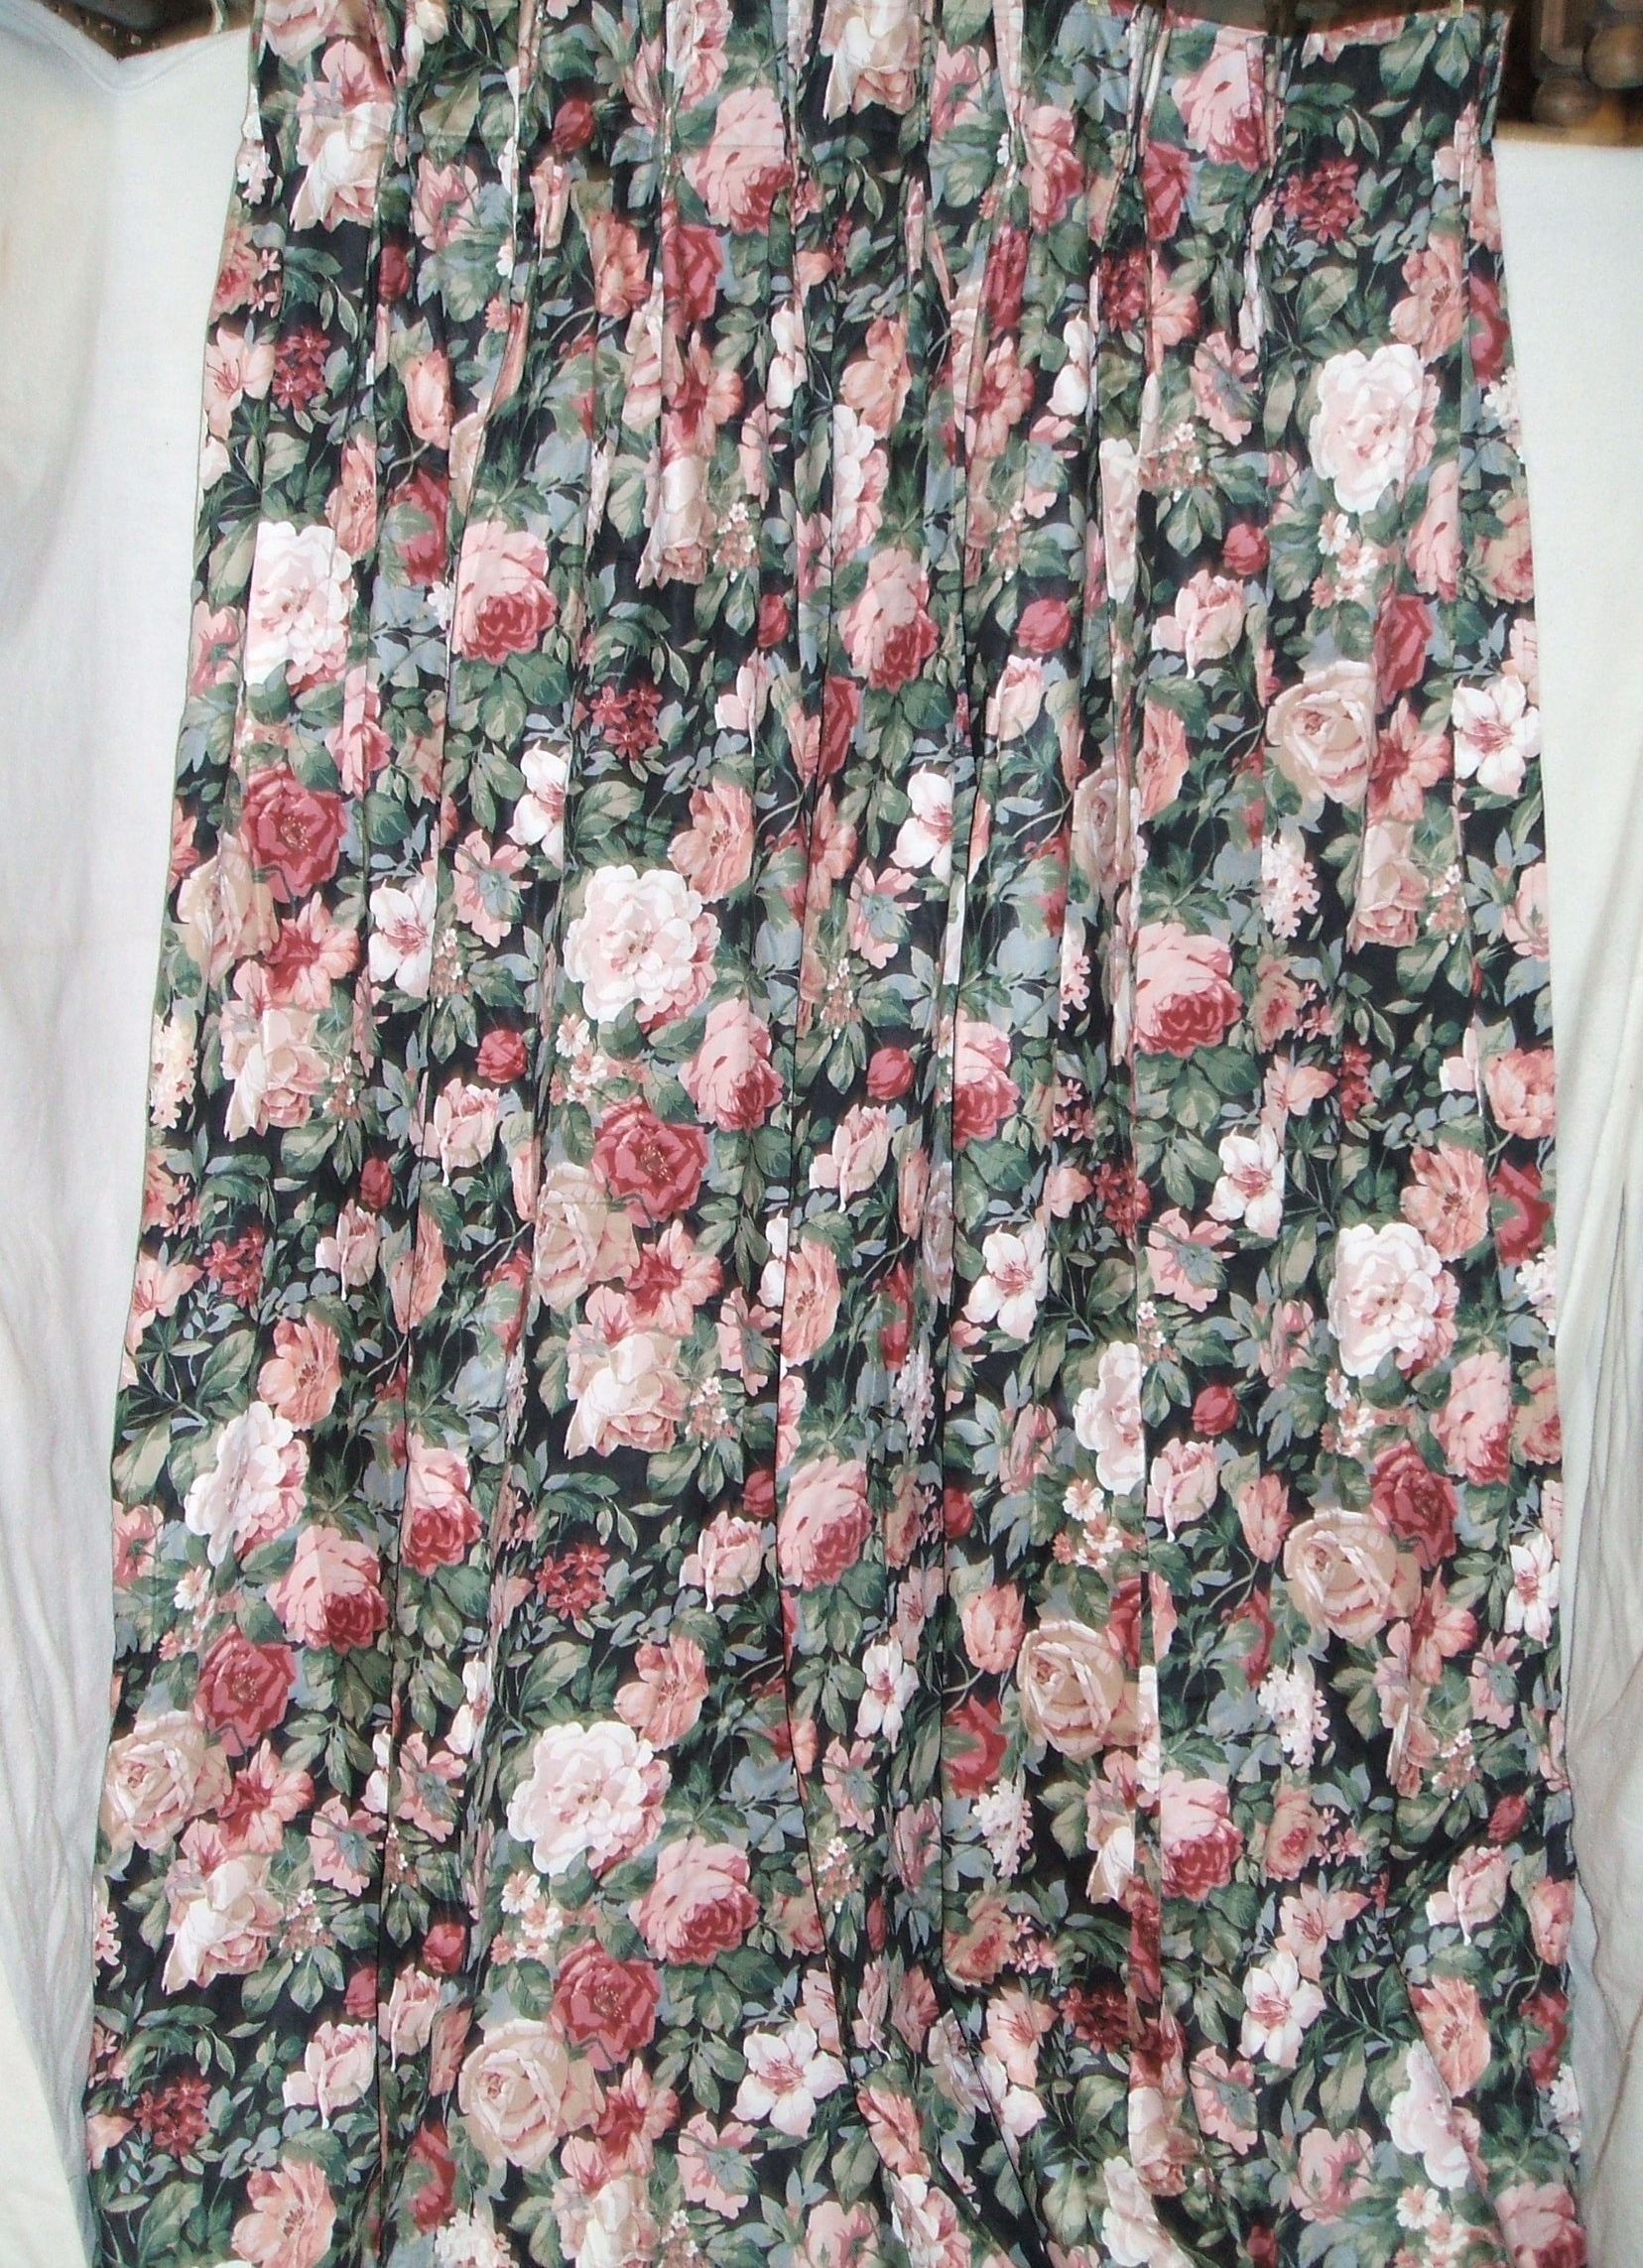 Pink and Black Floral Curtain (x4) -matching sashes